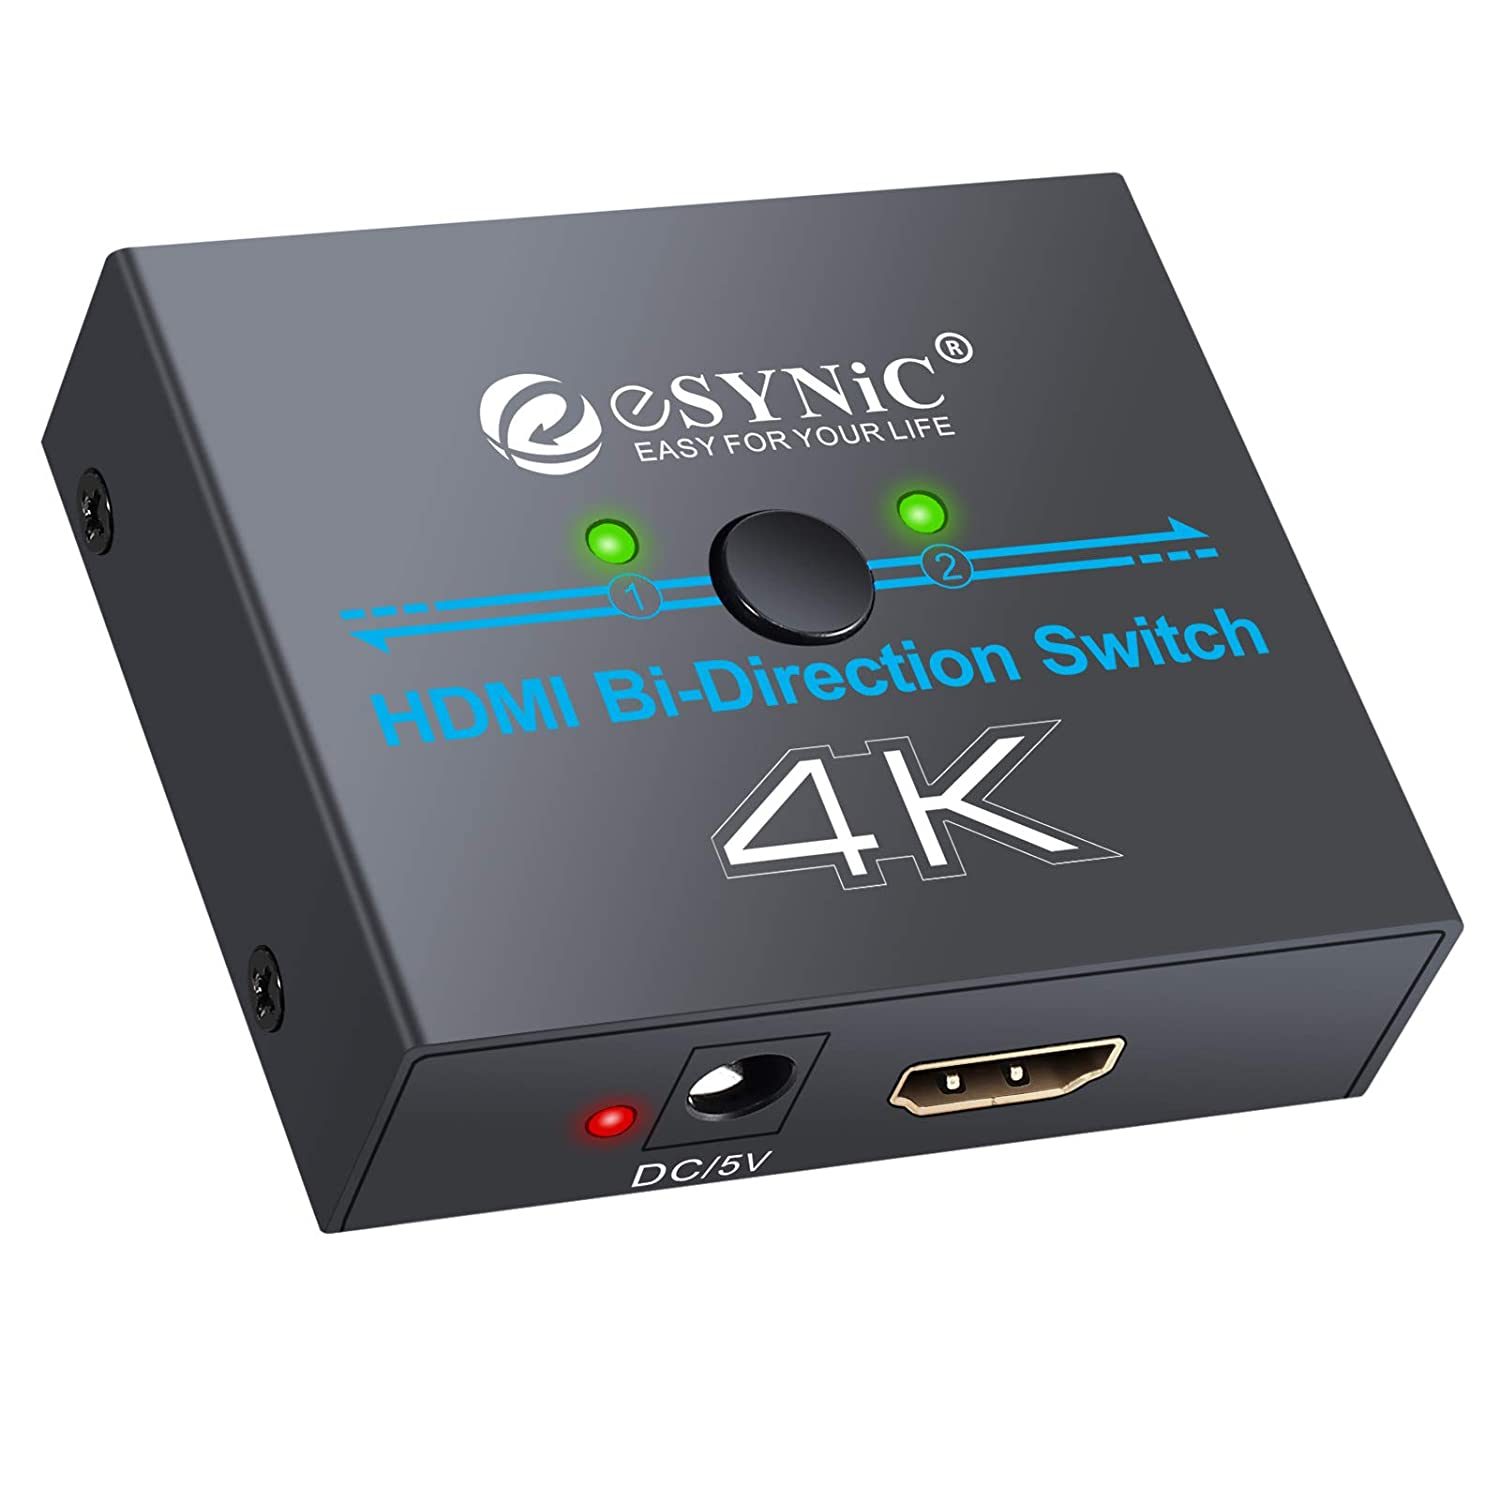 ESYNIC 4K HDMI Splitter 1 X 2 Ultra HD HDMI Splitter Amplifier Adapter HDMI to HDMI with Full 1080P Support 3D CEC for Apple TV PS3 PS4 Xbox Blu-ray HDCP Compliant ?? VC120